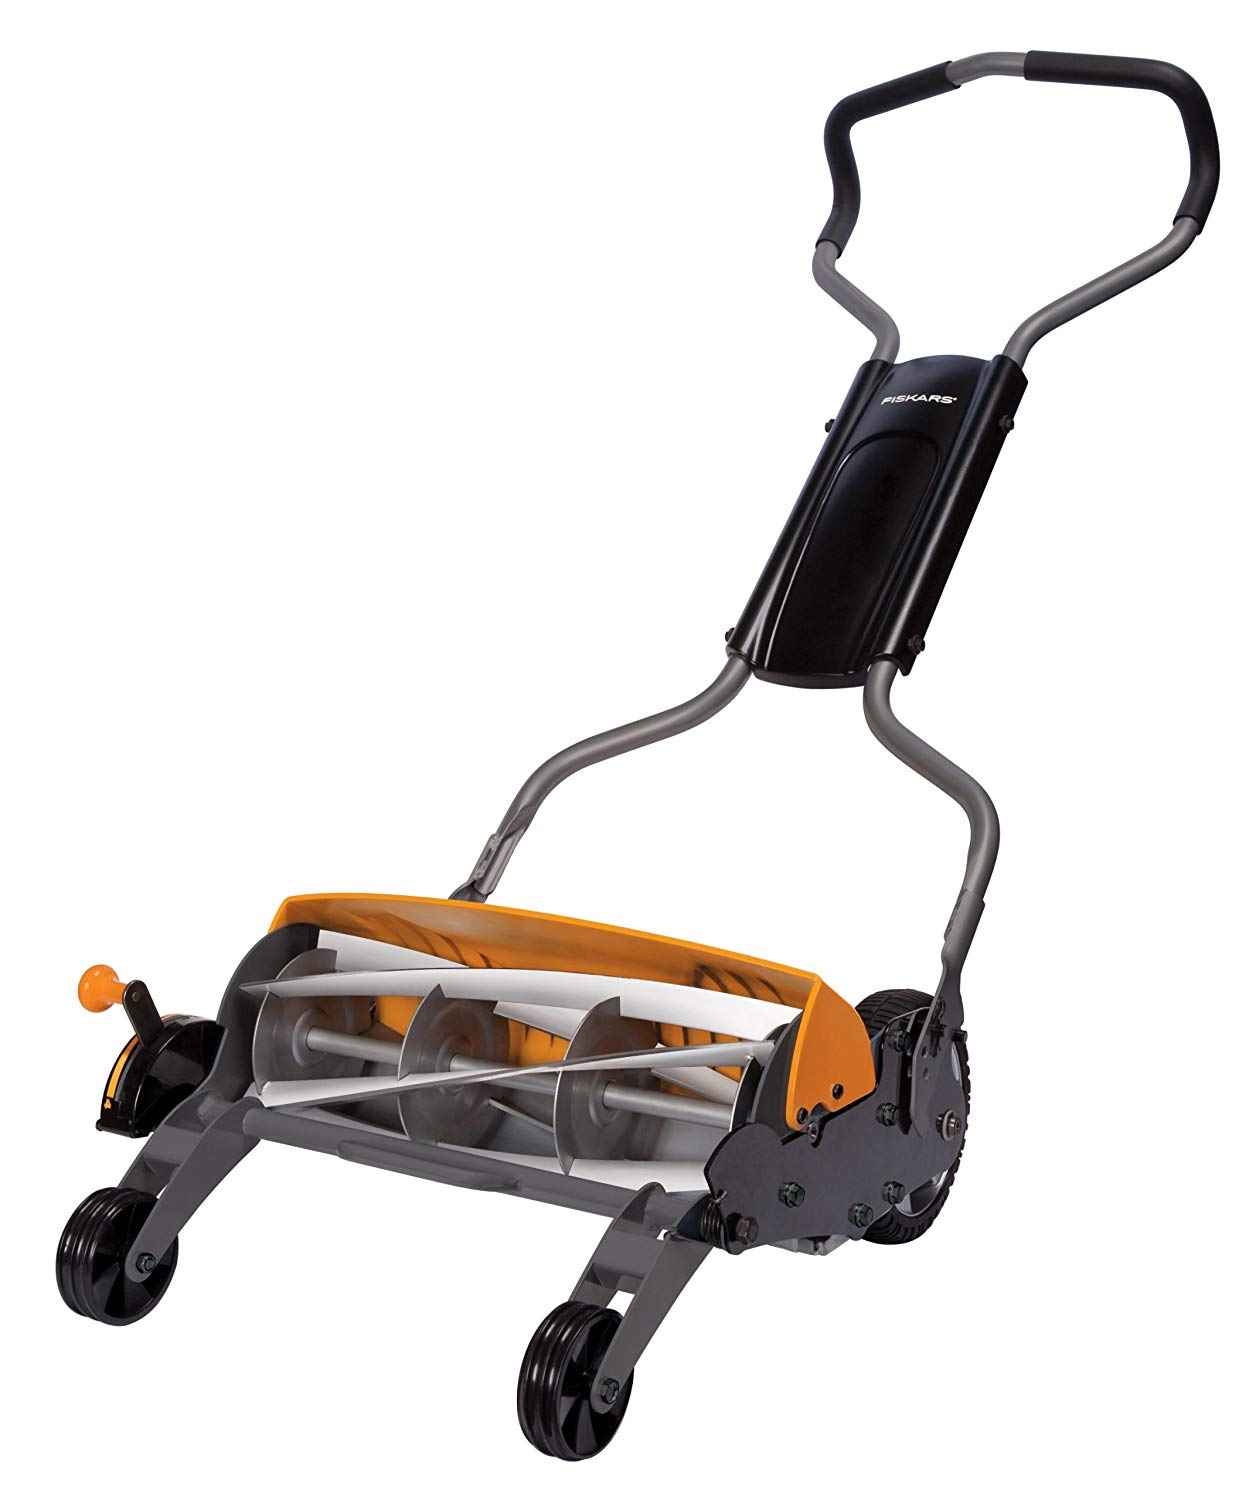 Best Lawn Mower Reviews 2019